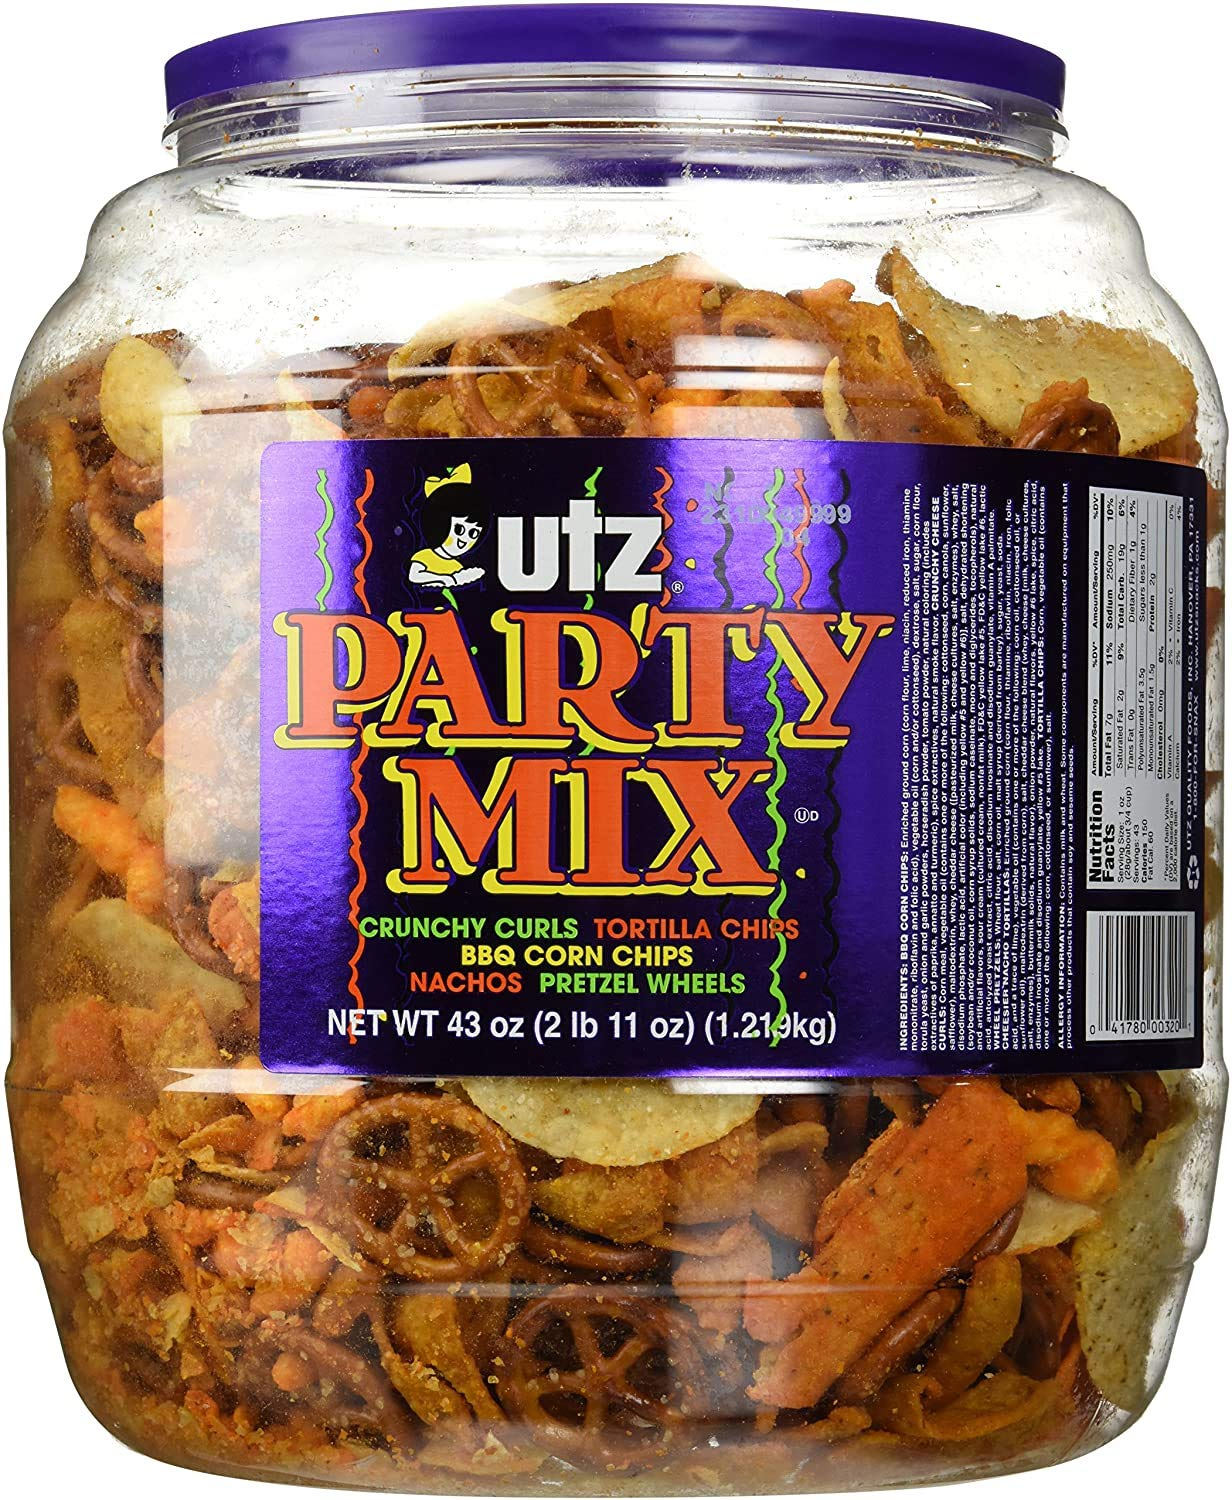 Utz Party Mix - 43 Ounce Barrel - Tasty Snack Mix Includes Corn Tortillas, Nacho Tortillas, Pretzels, BBQ Corn Chips and Cheese Curls, Easy and Quick Party Snack, Cholesterol Free and Trans-Fat Free